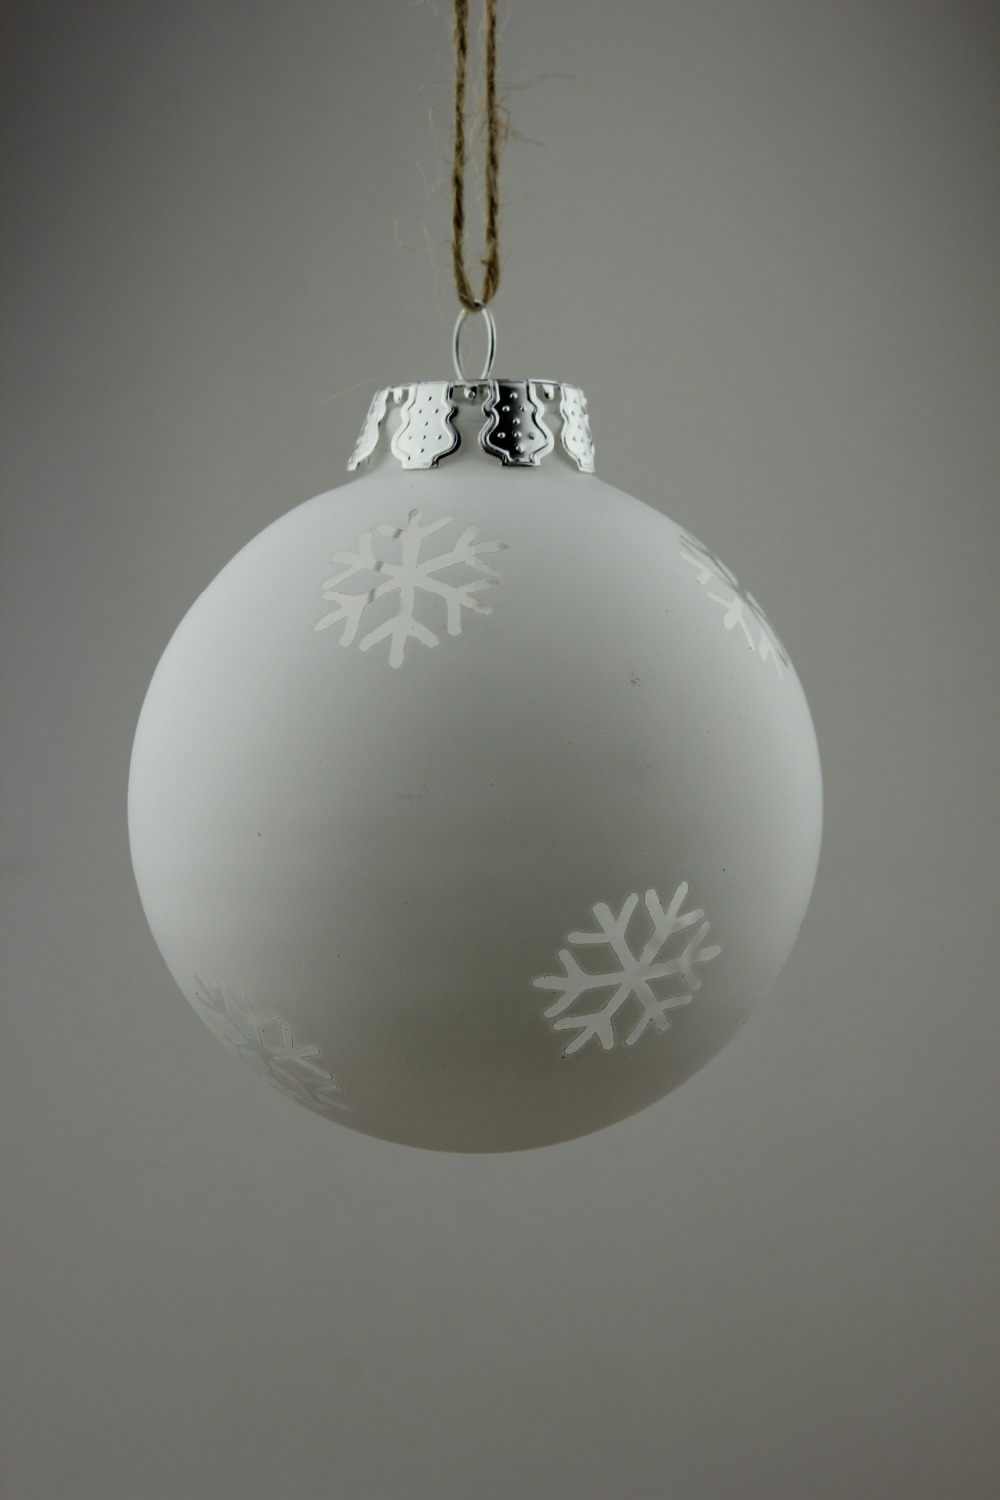 Flat glass ornaments - Frosted White Christmas Ornament Balls Glass Xmas Tree Pendants Wedding Decoration Bauble X